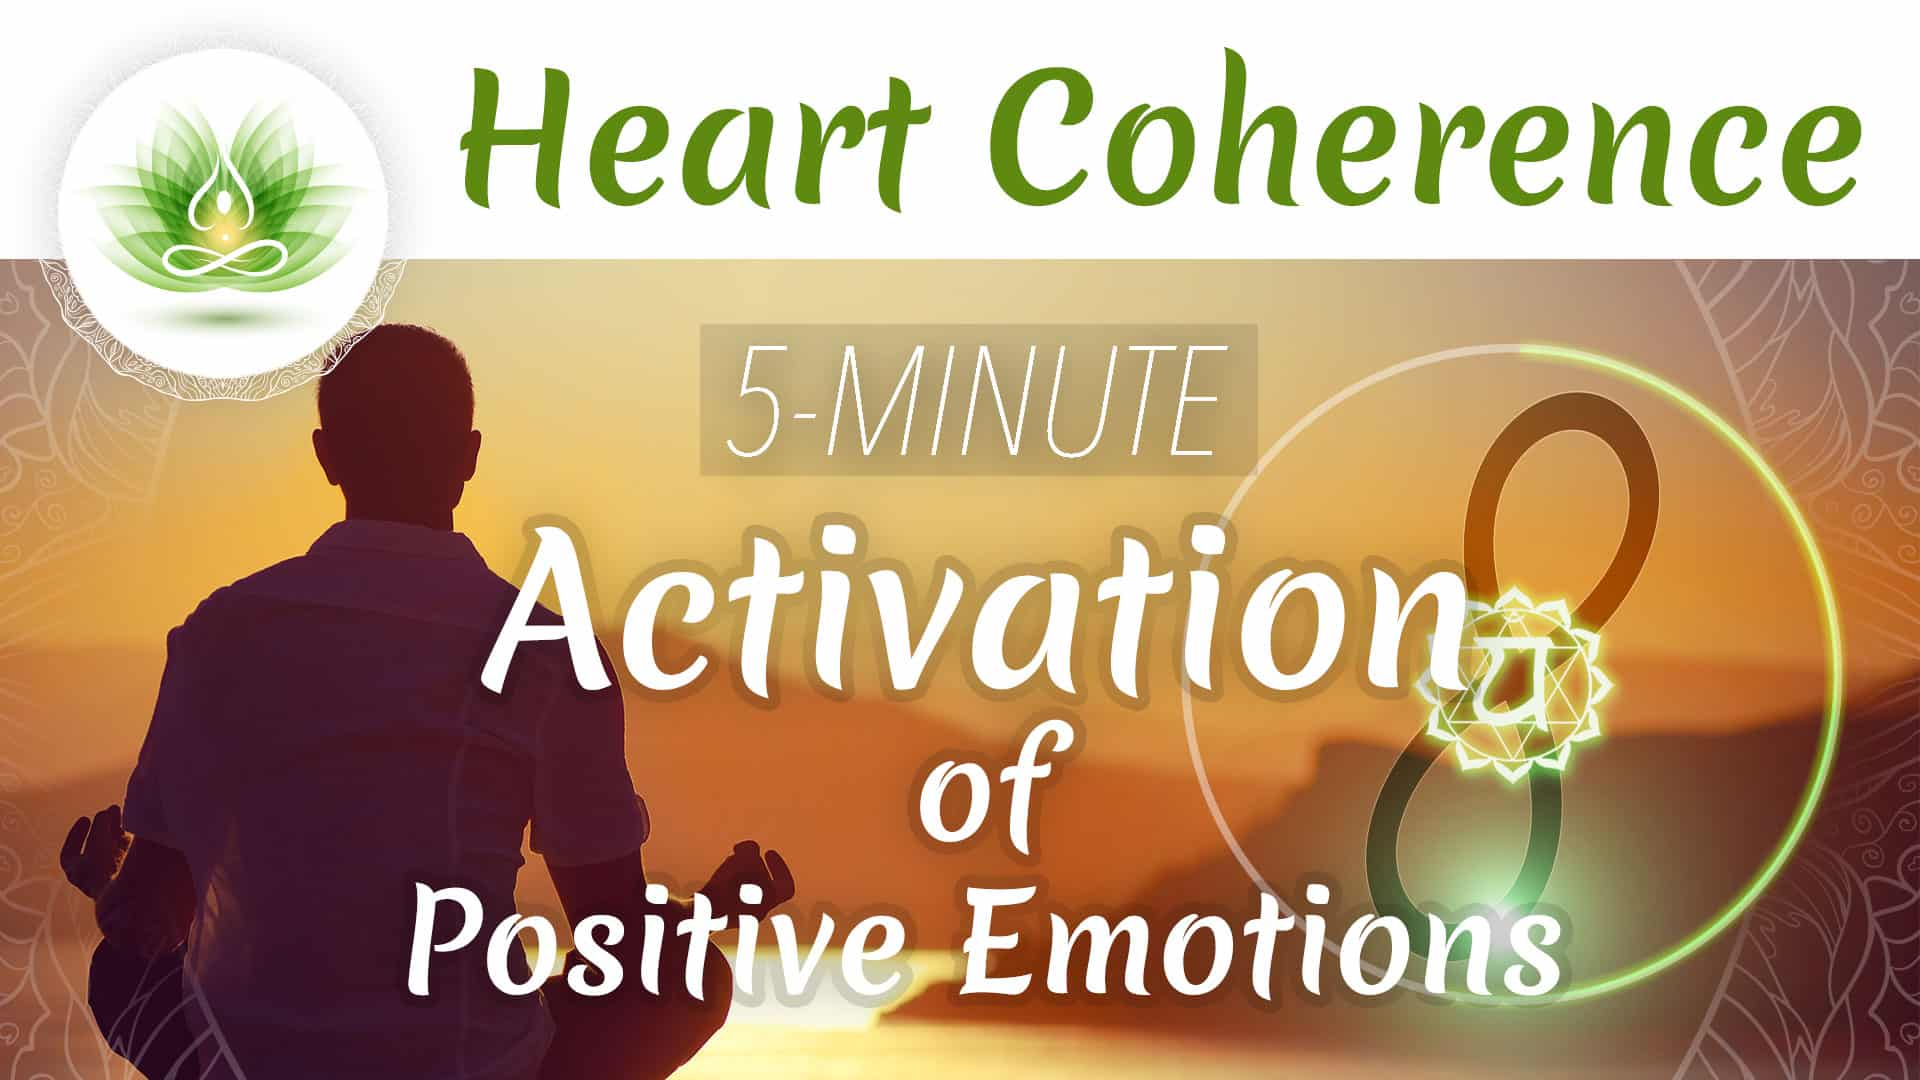 Activation of Positive Emotions